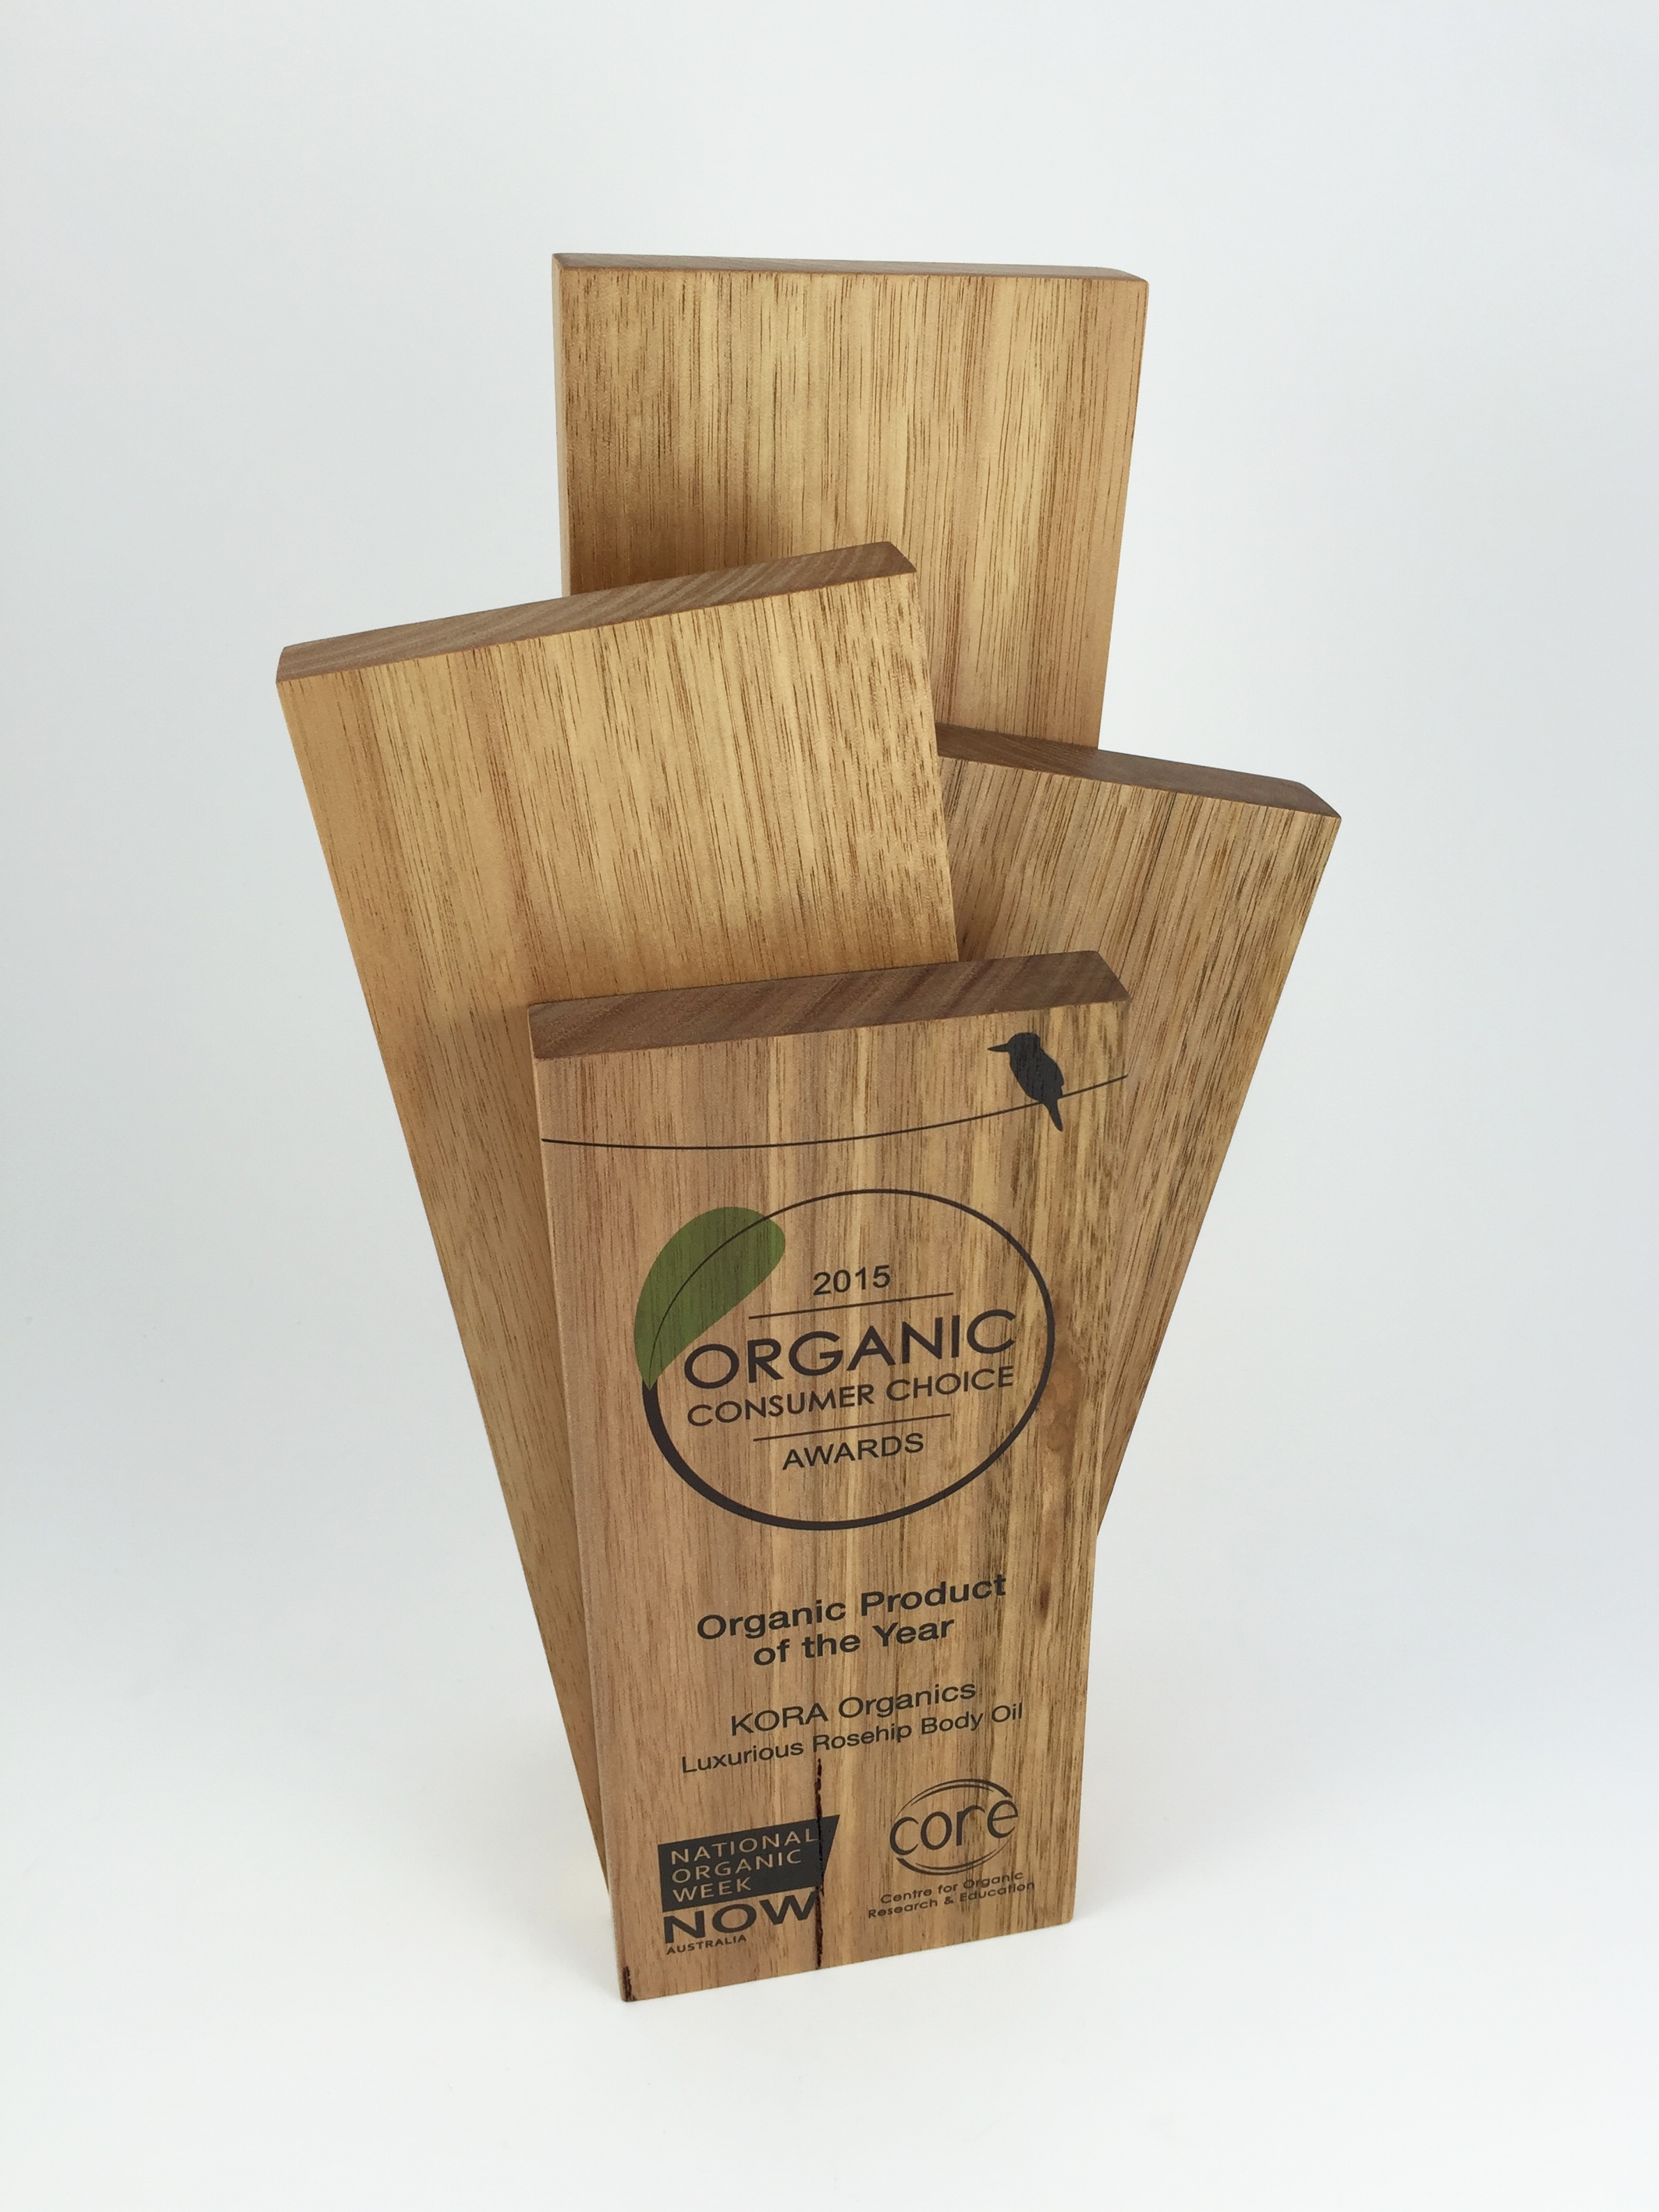 consumer-choice-awards-eco-timber-trophy-06.jpg